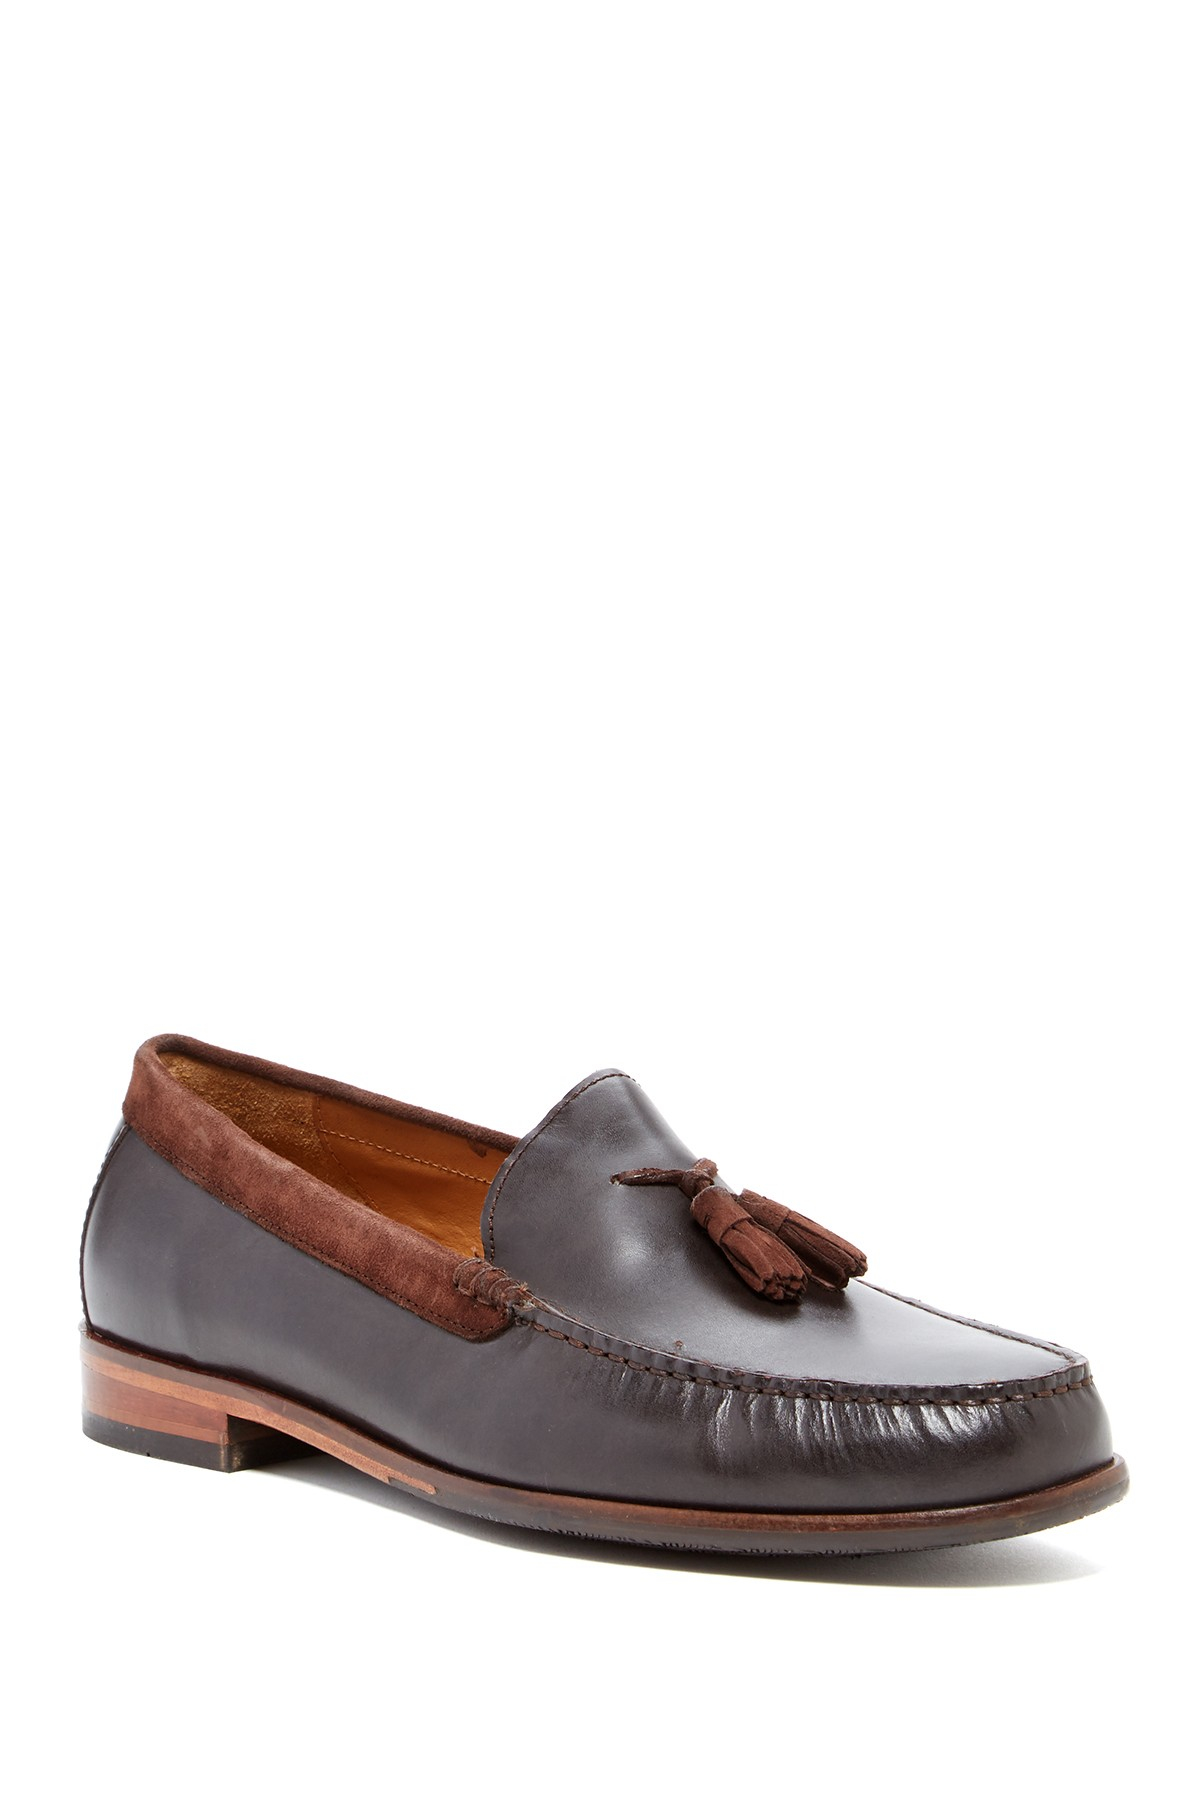 cole haan fairmont tassel loafer in brown for chstnt